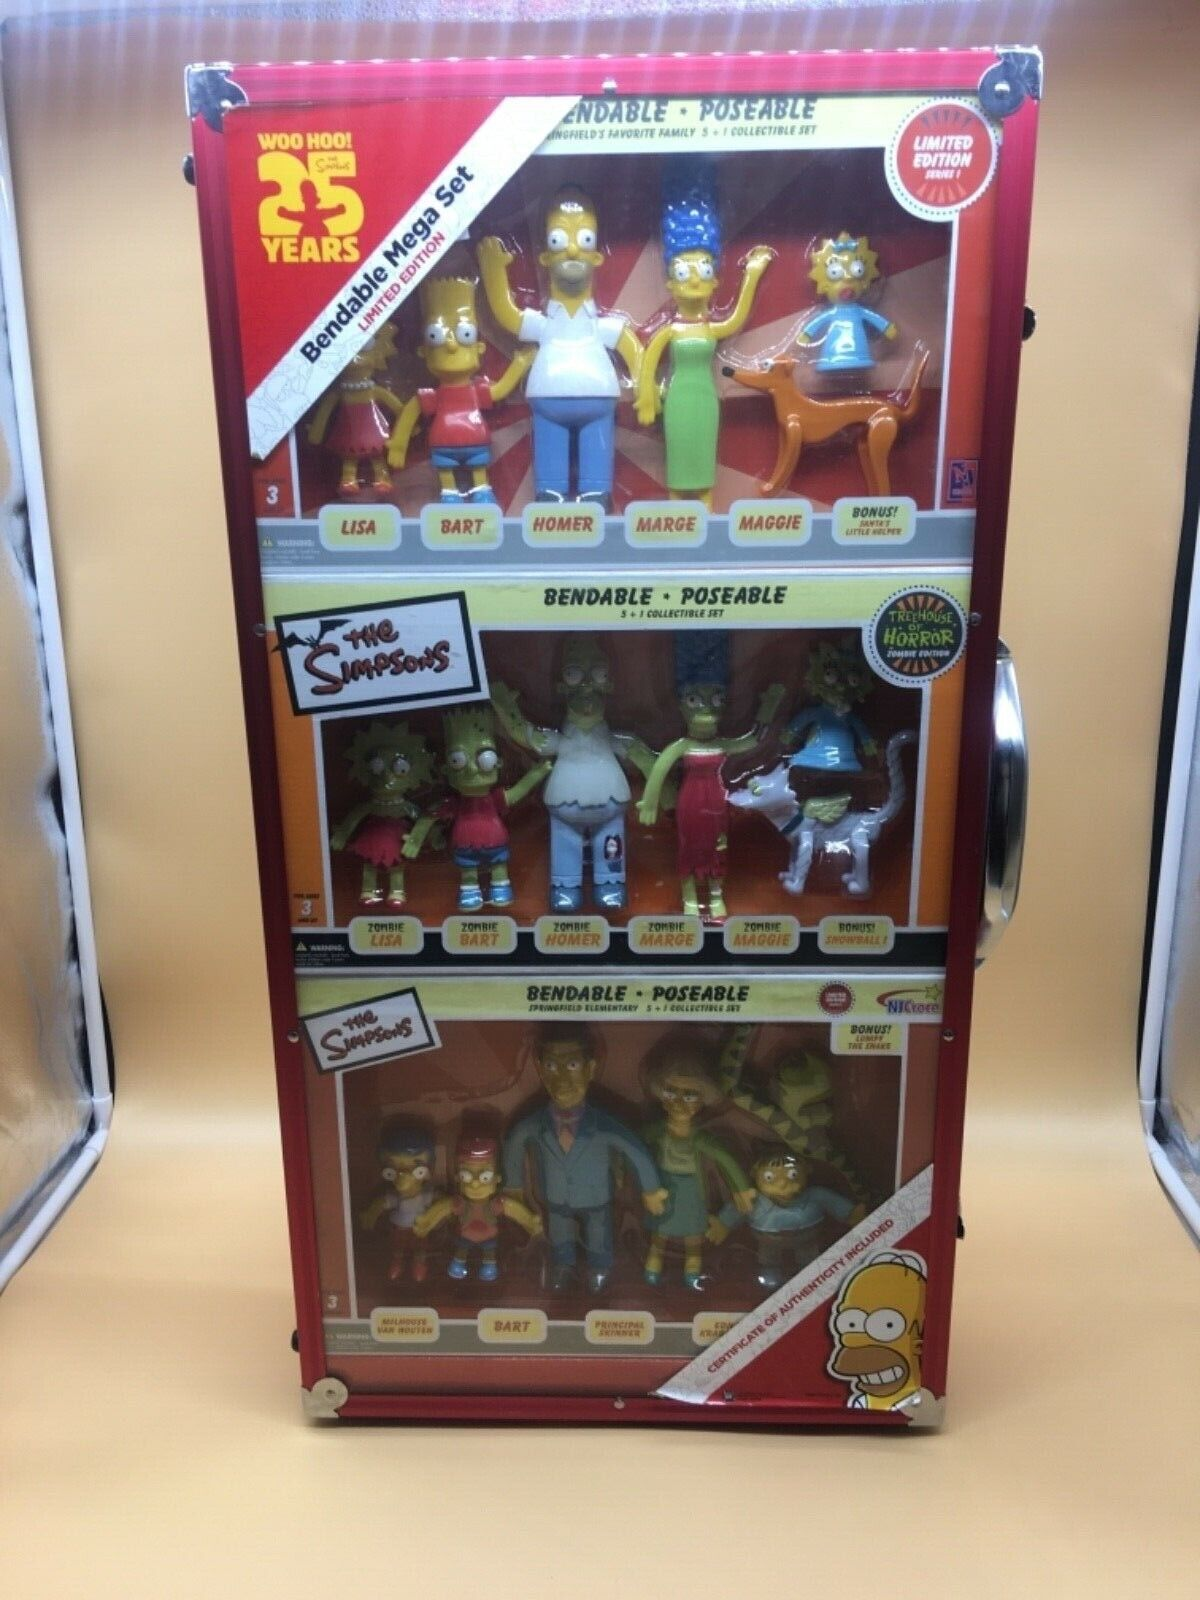 SIMPSON 25TH ANNIVERSARY MEGA SET BENDABLE FiguraS 1000 PCS LIM. ED. 68 X 38 CM